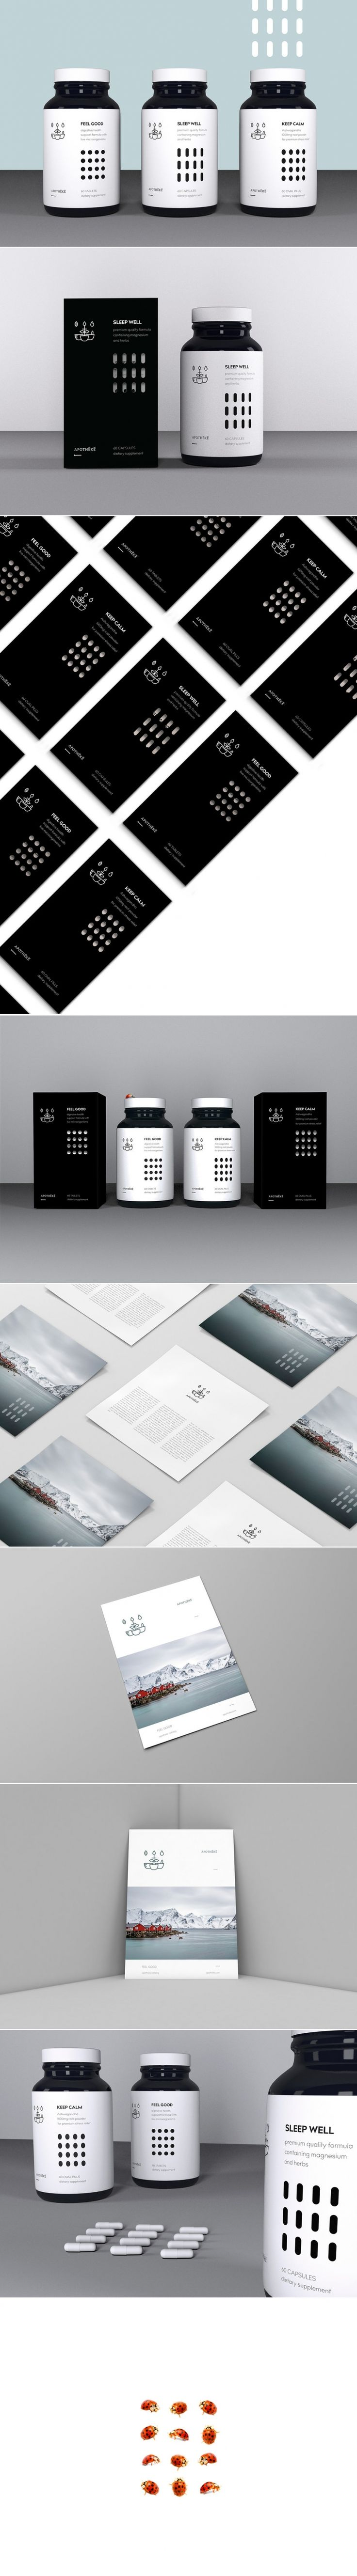 299 best CI design images on Pinterest | Brand design, Brand ...